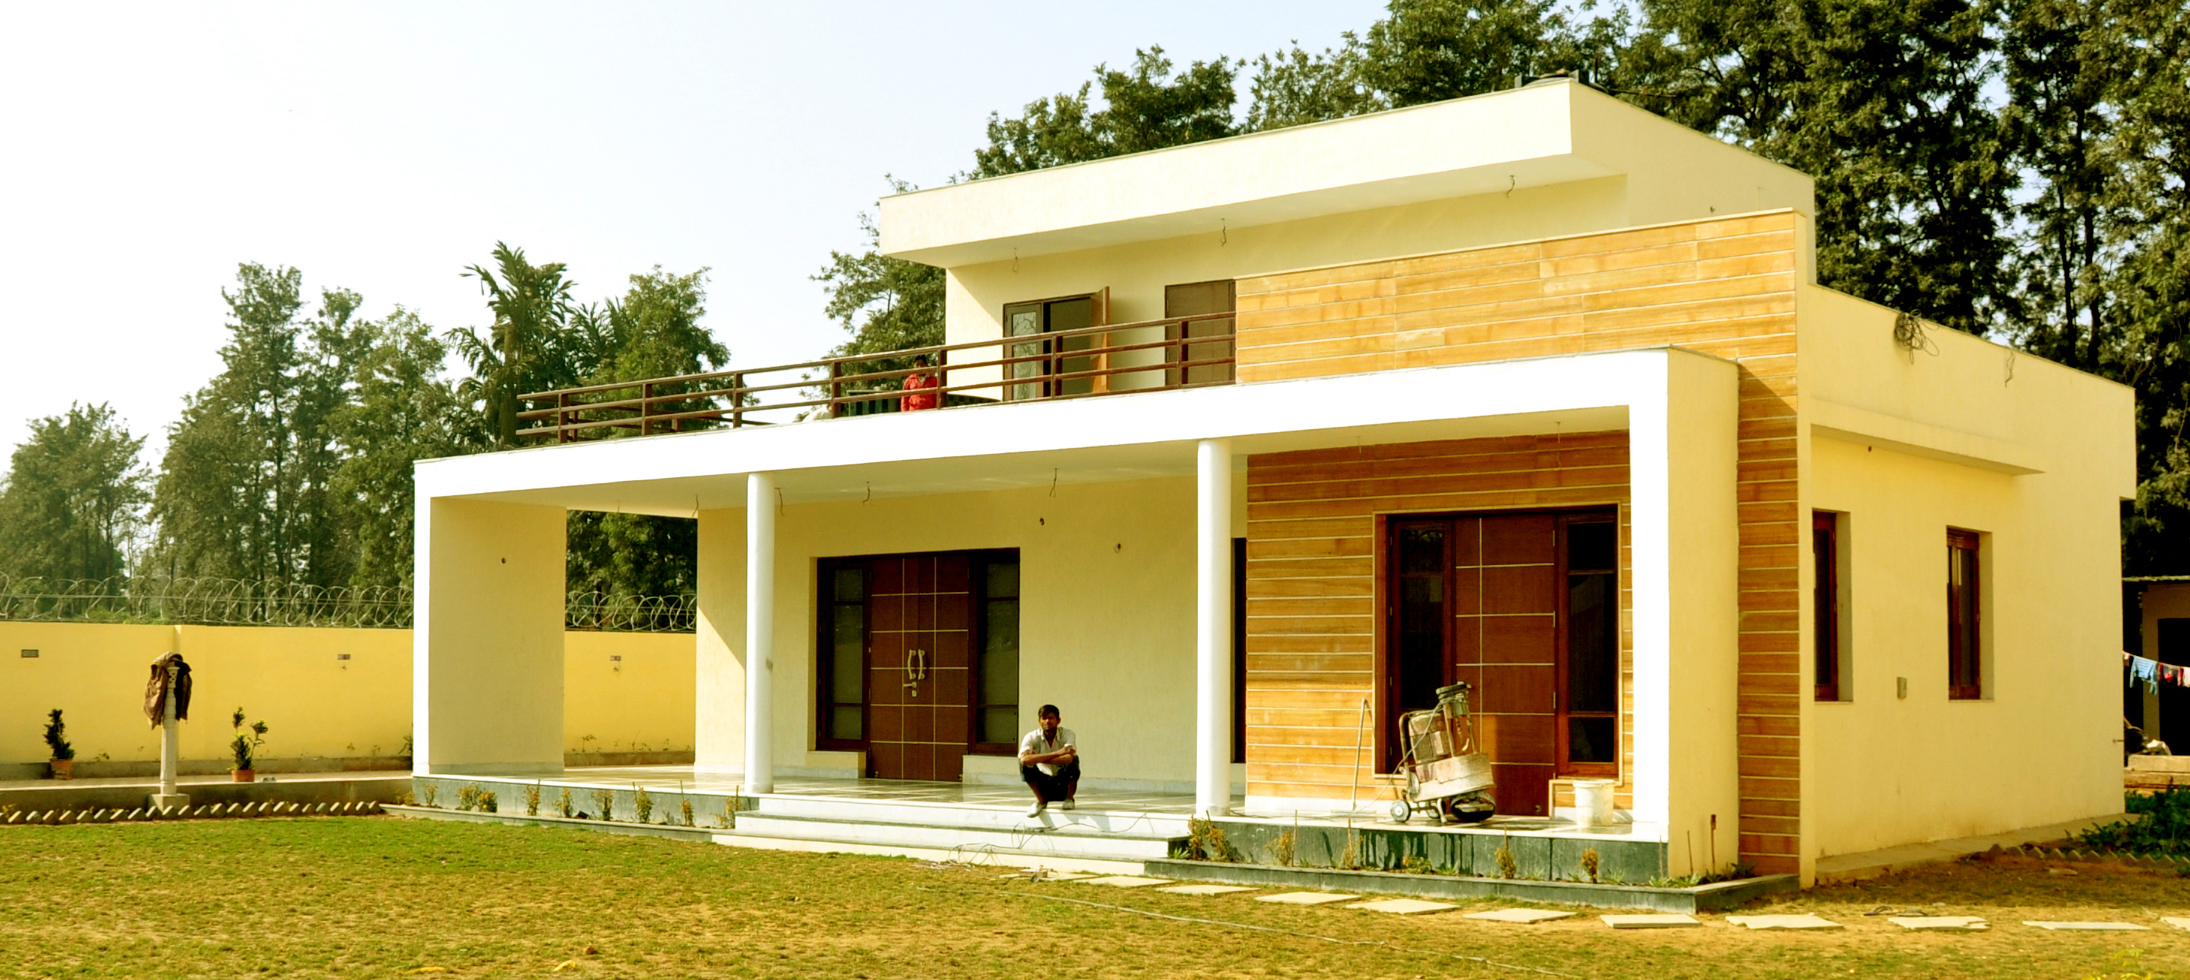 Chattarpur farm house south delhi architect magazine for Small indian house plans modern